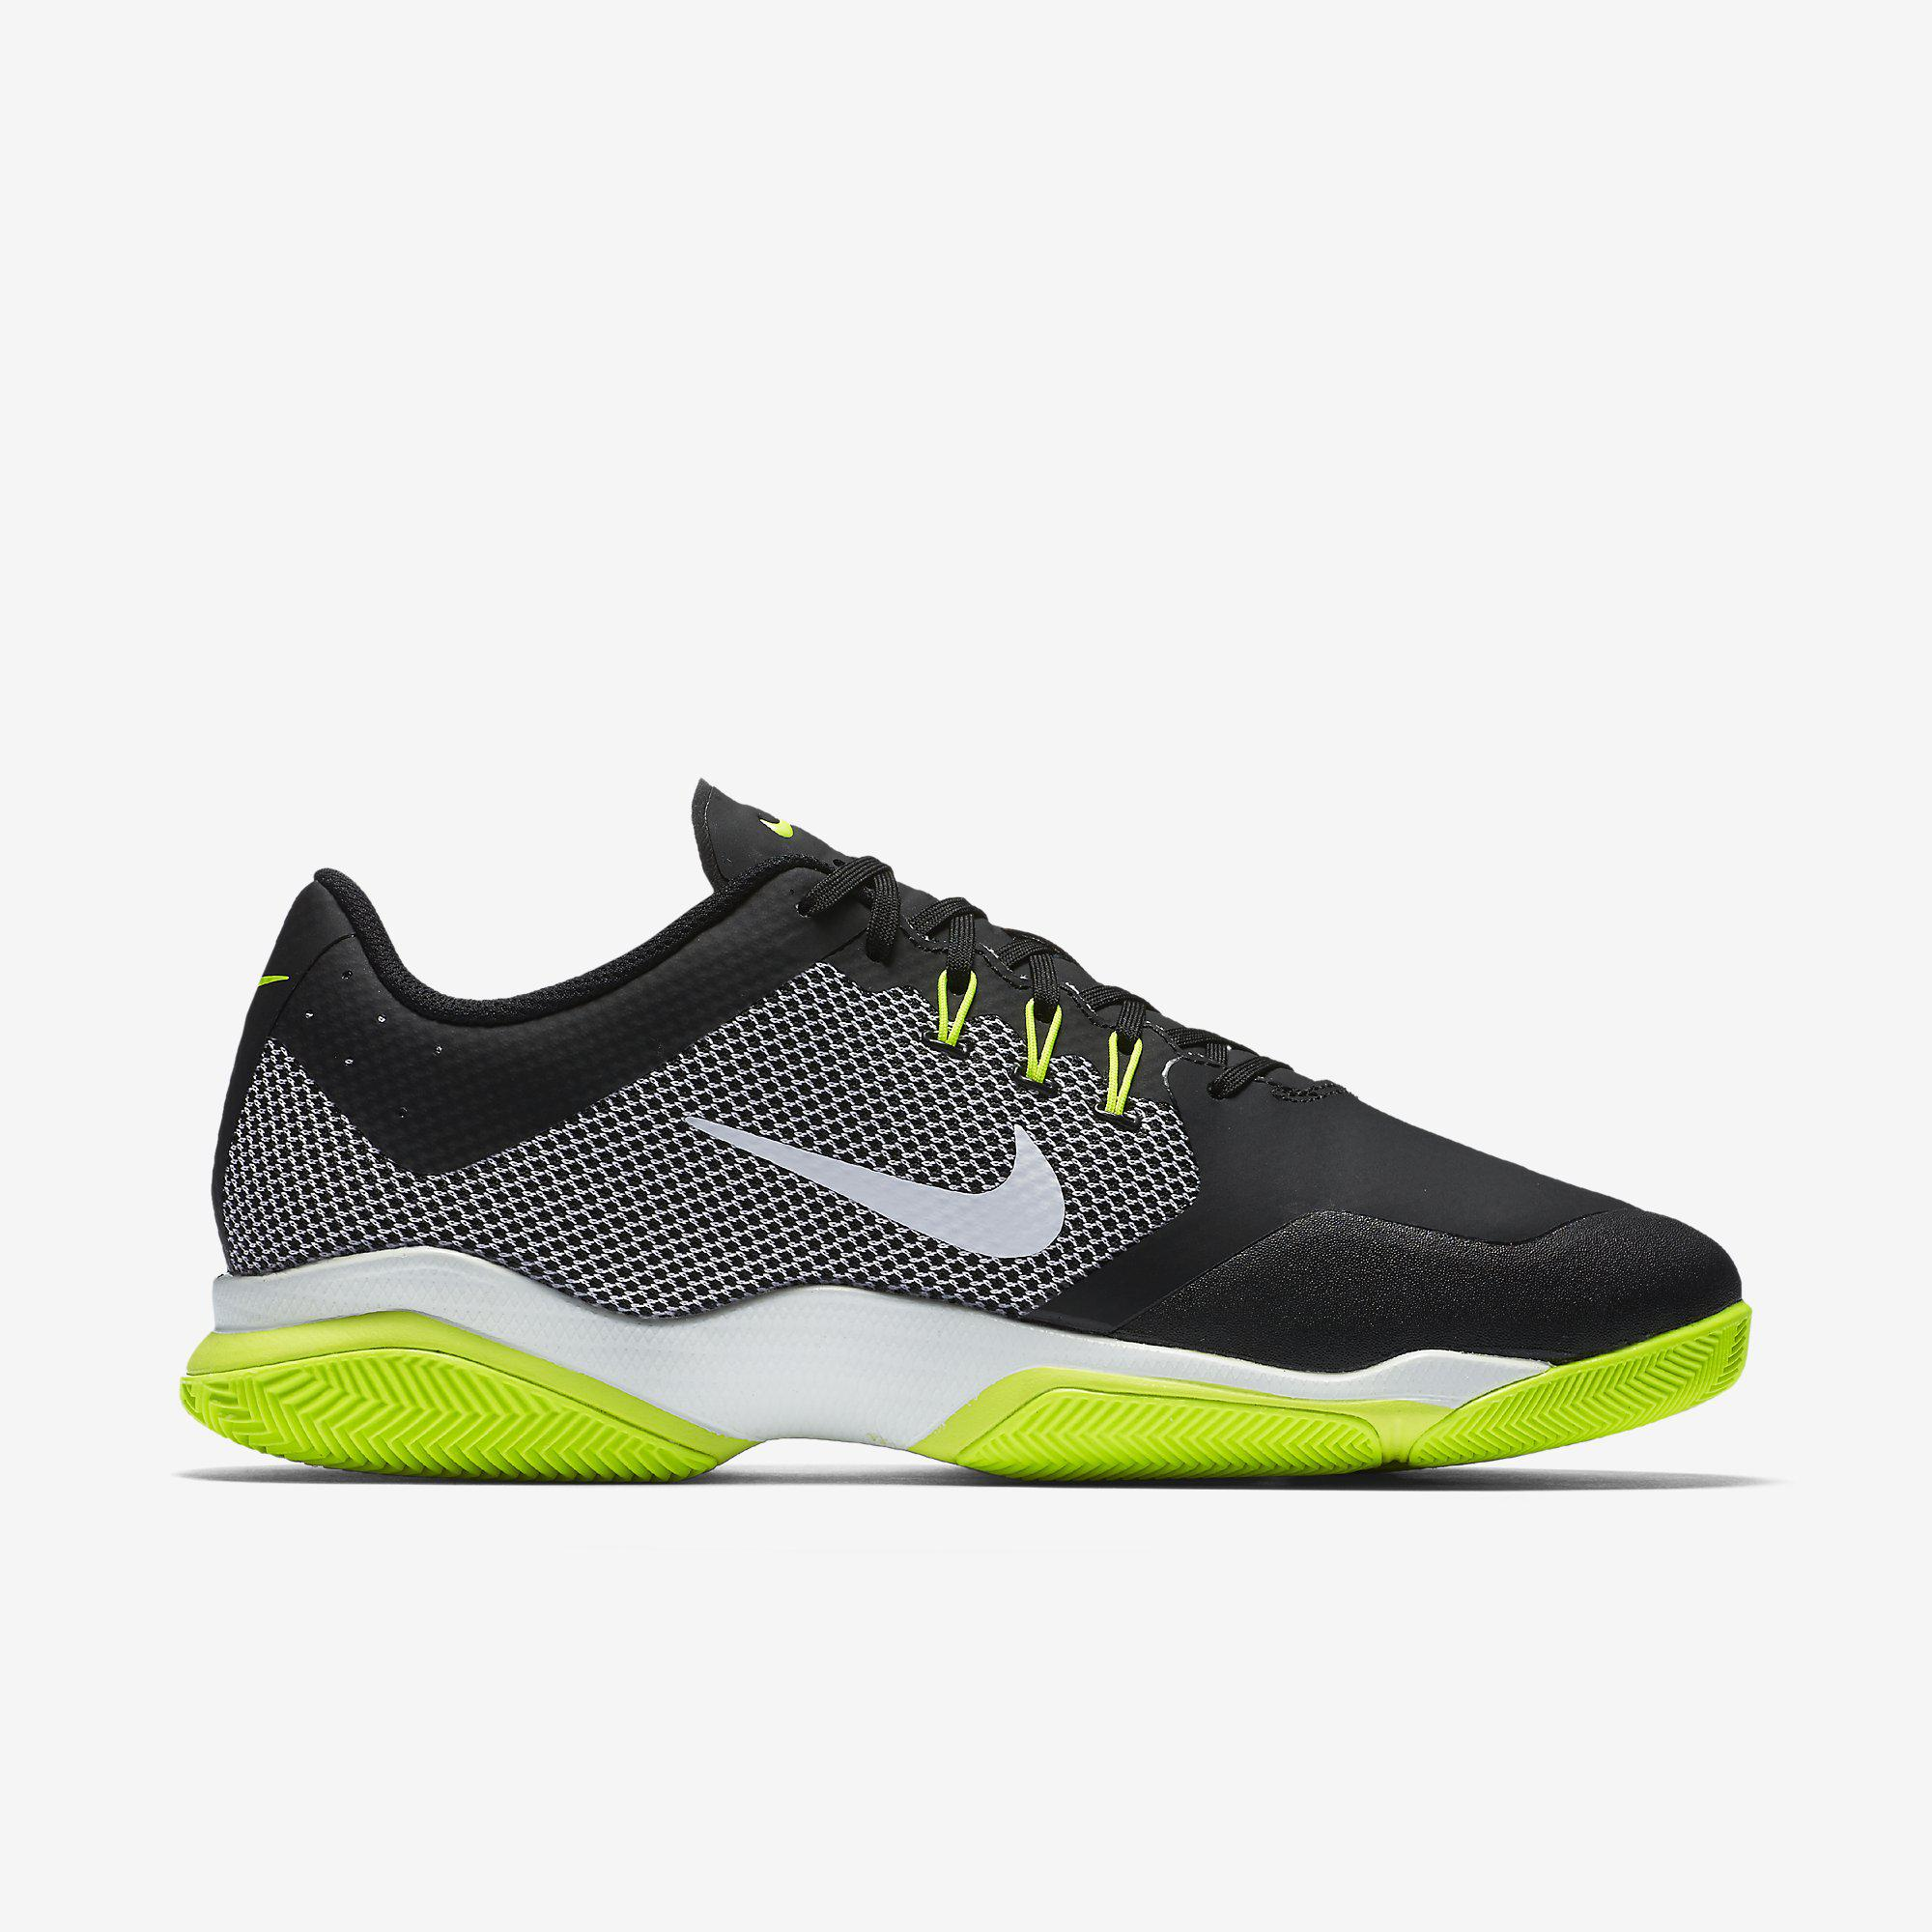 nike mens air zoom ultra tennis shoes black volt